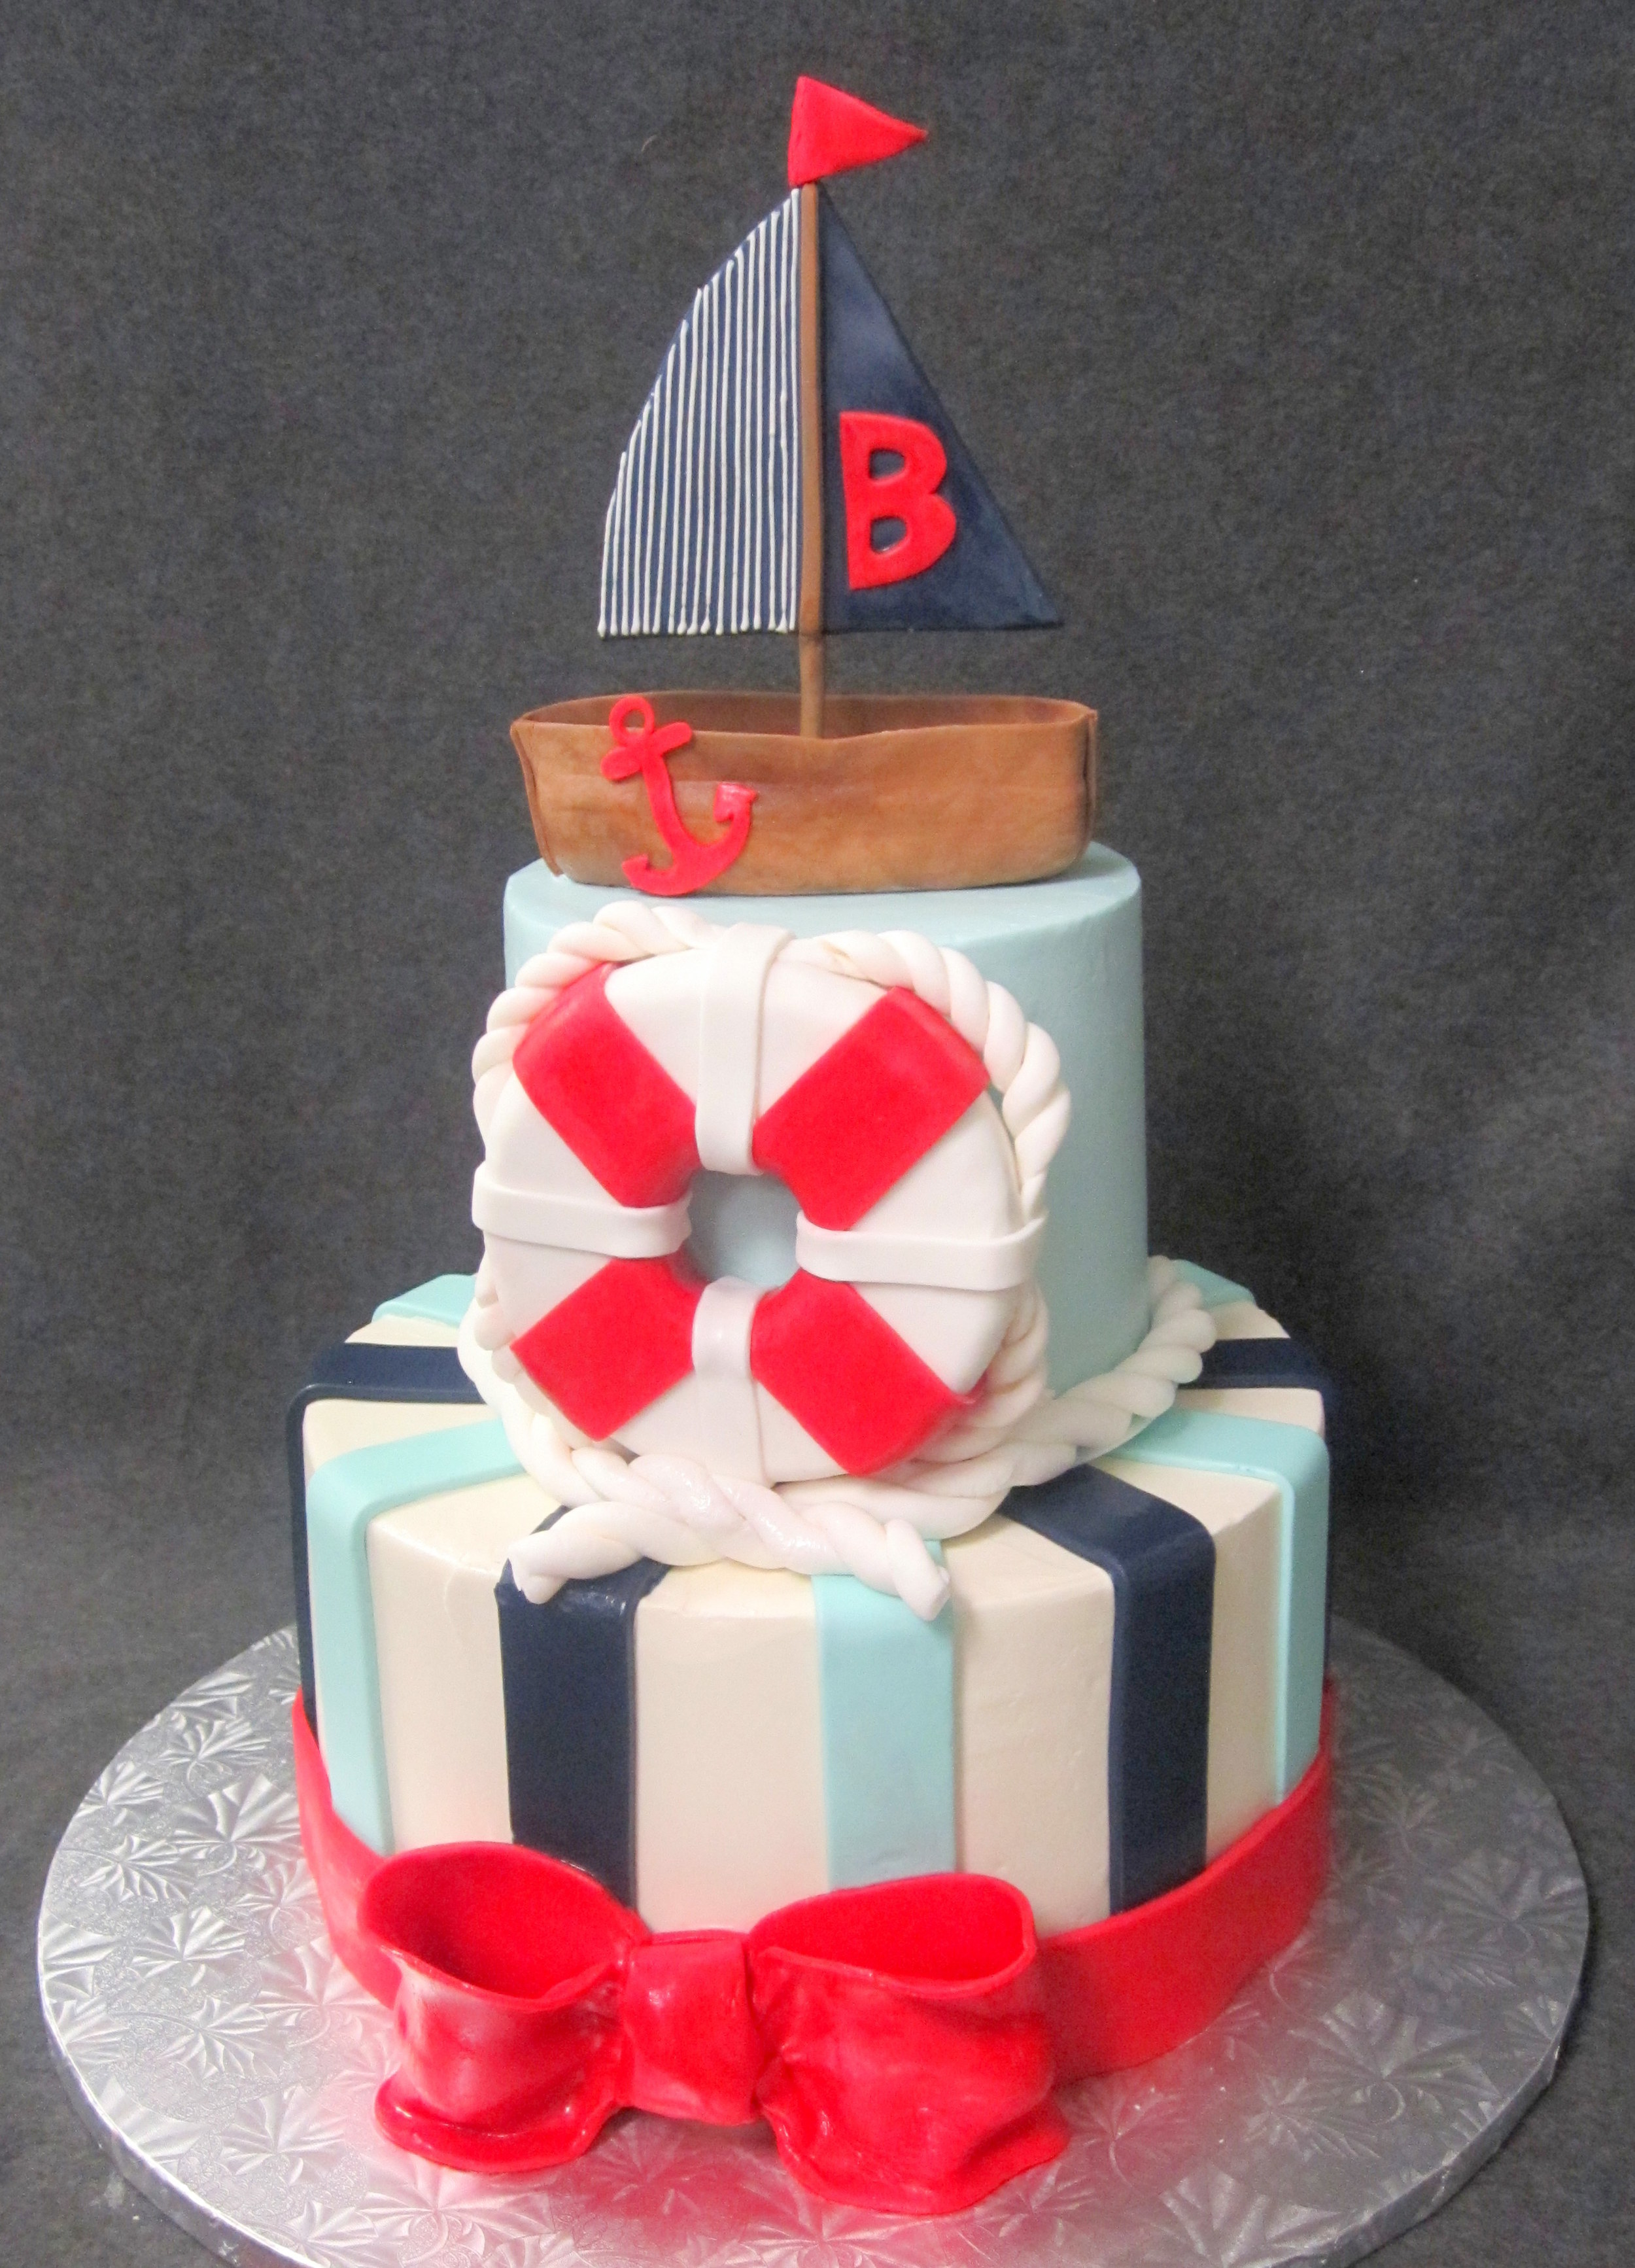 boat life ring red and navy.jpg